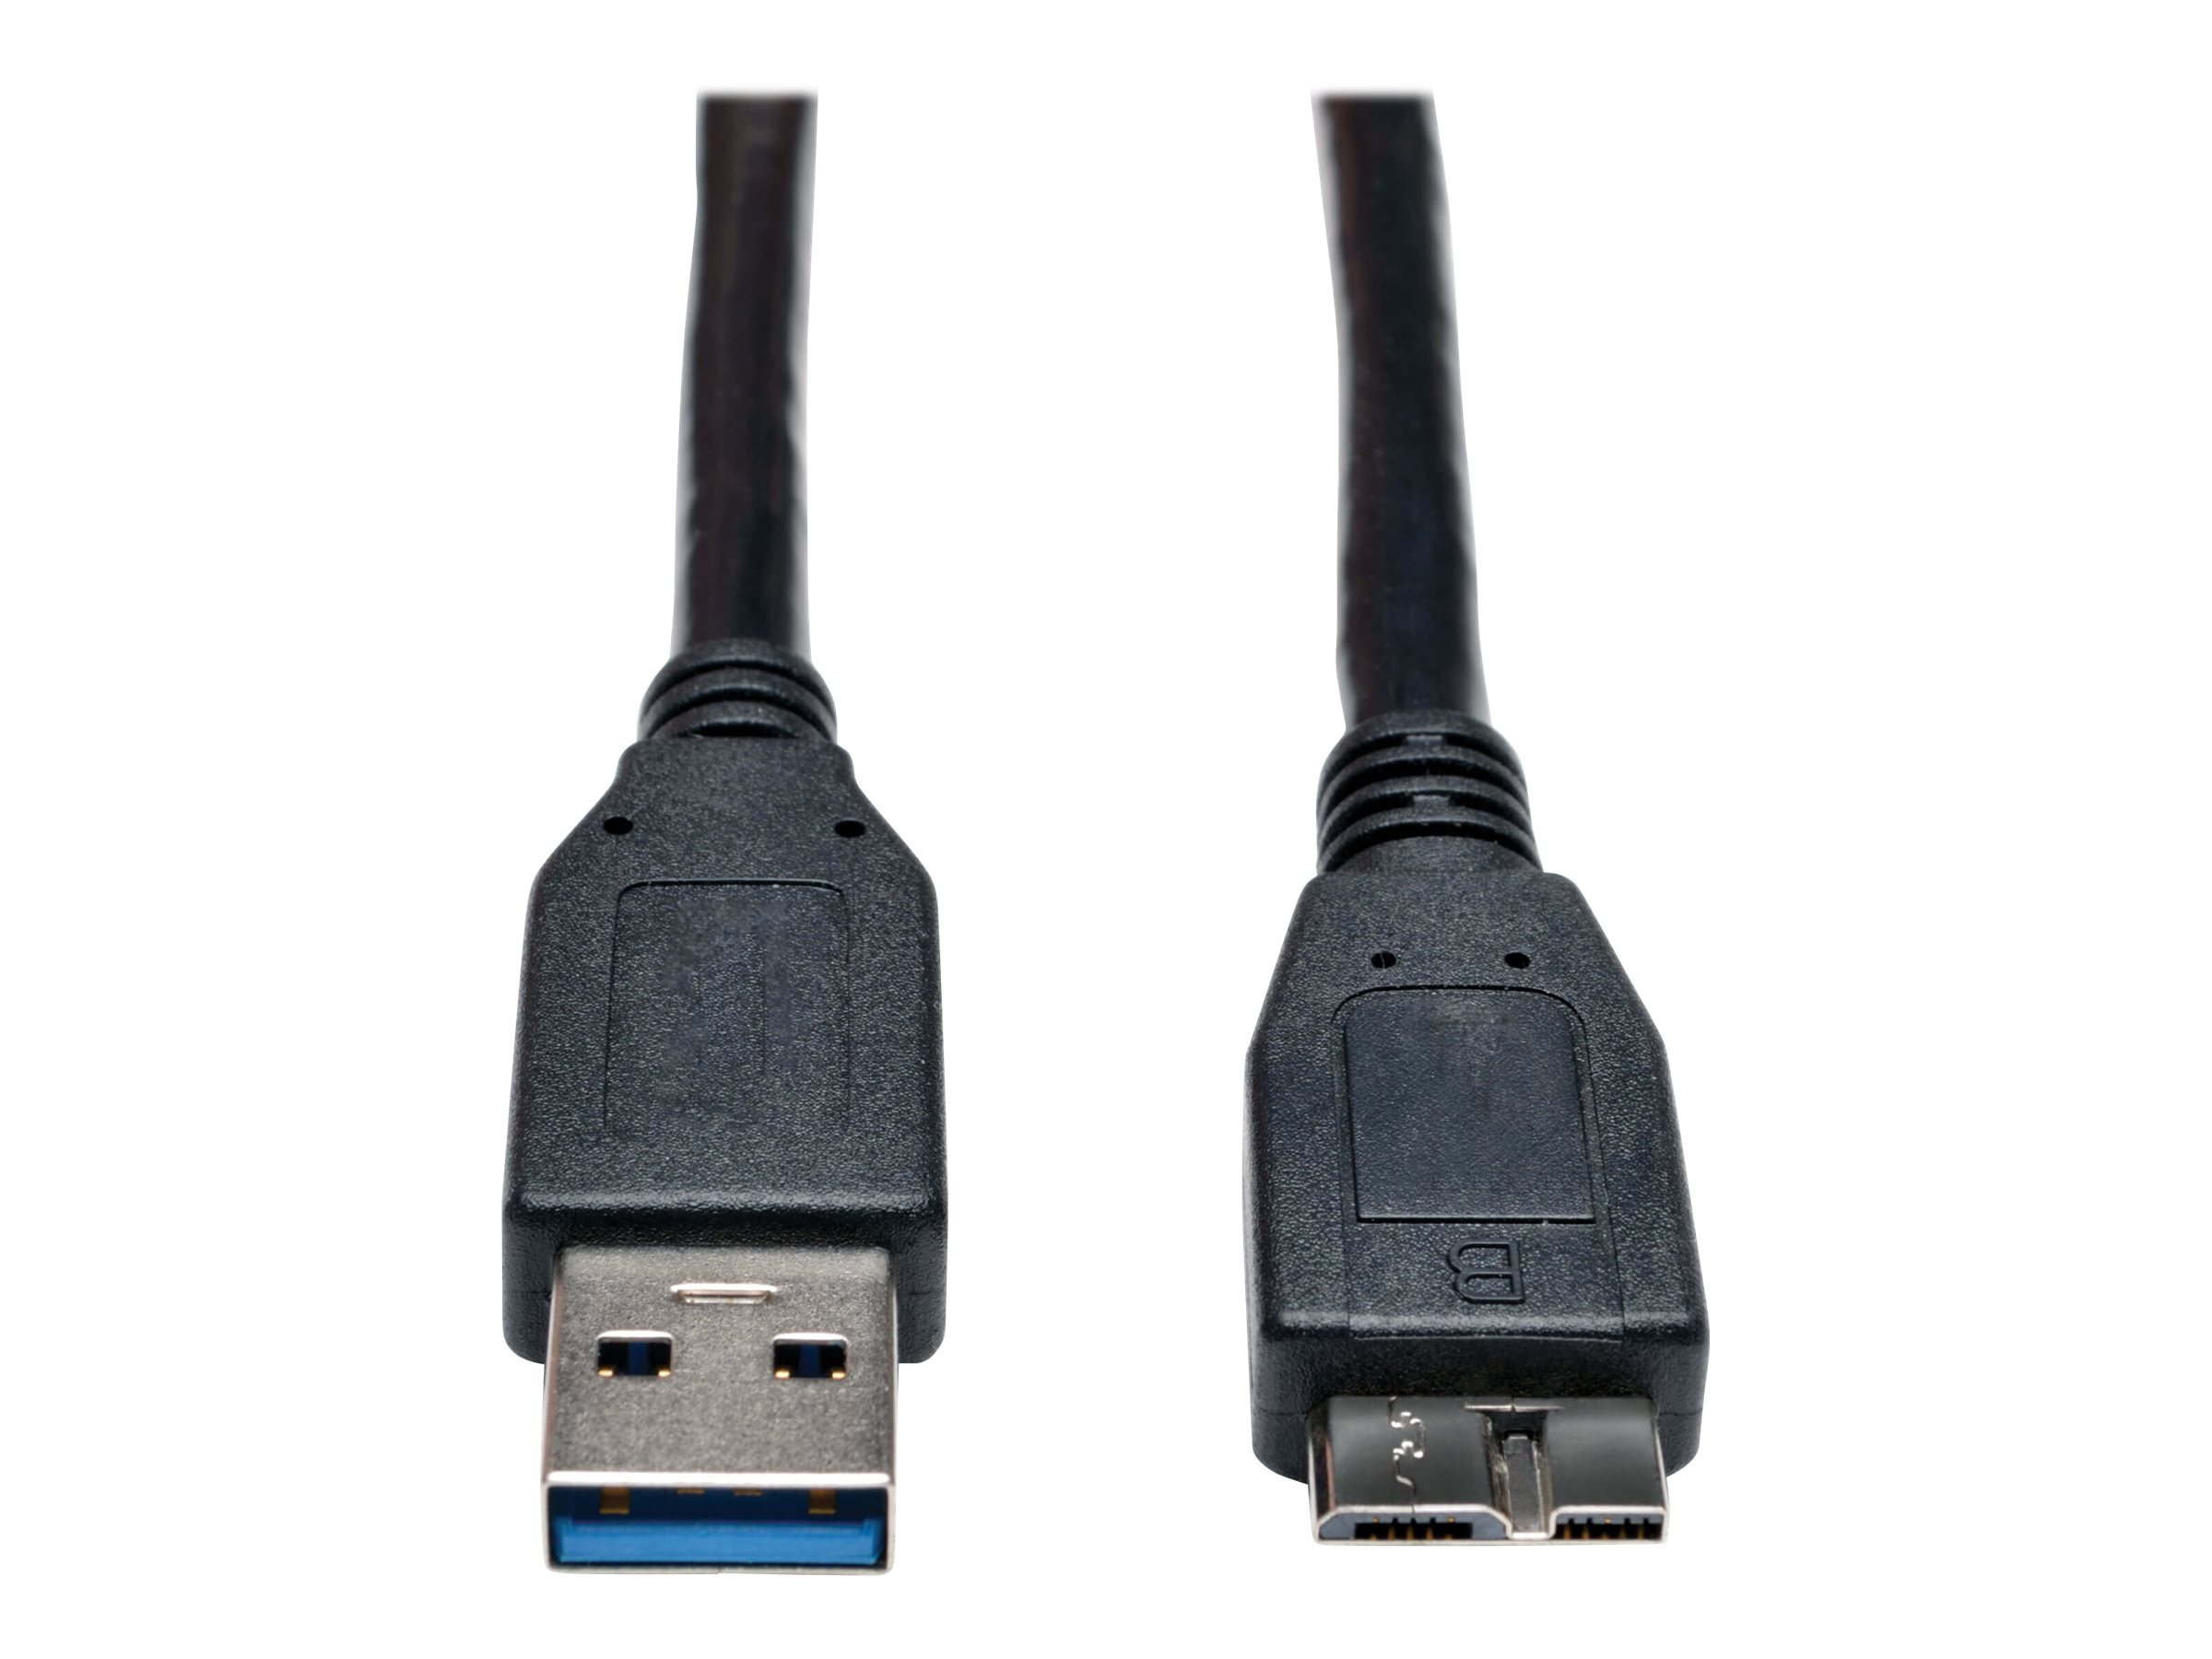 Tripp Lite 6ft USB 3.0 SuperSpeed Device Cable USB-A Male to USB Micro-B Male Black 6' - USB cable - 1.83 m